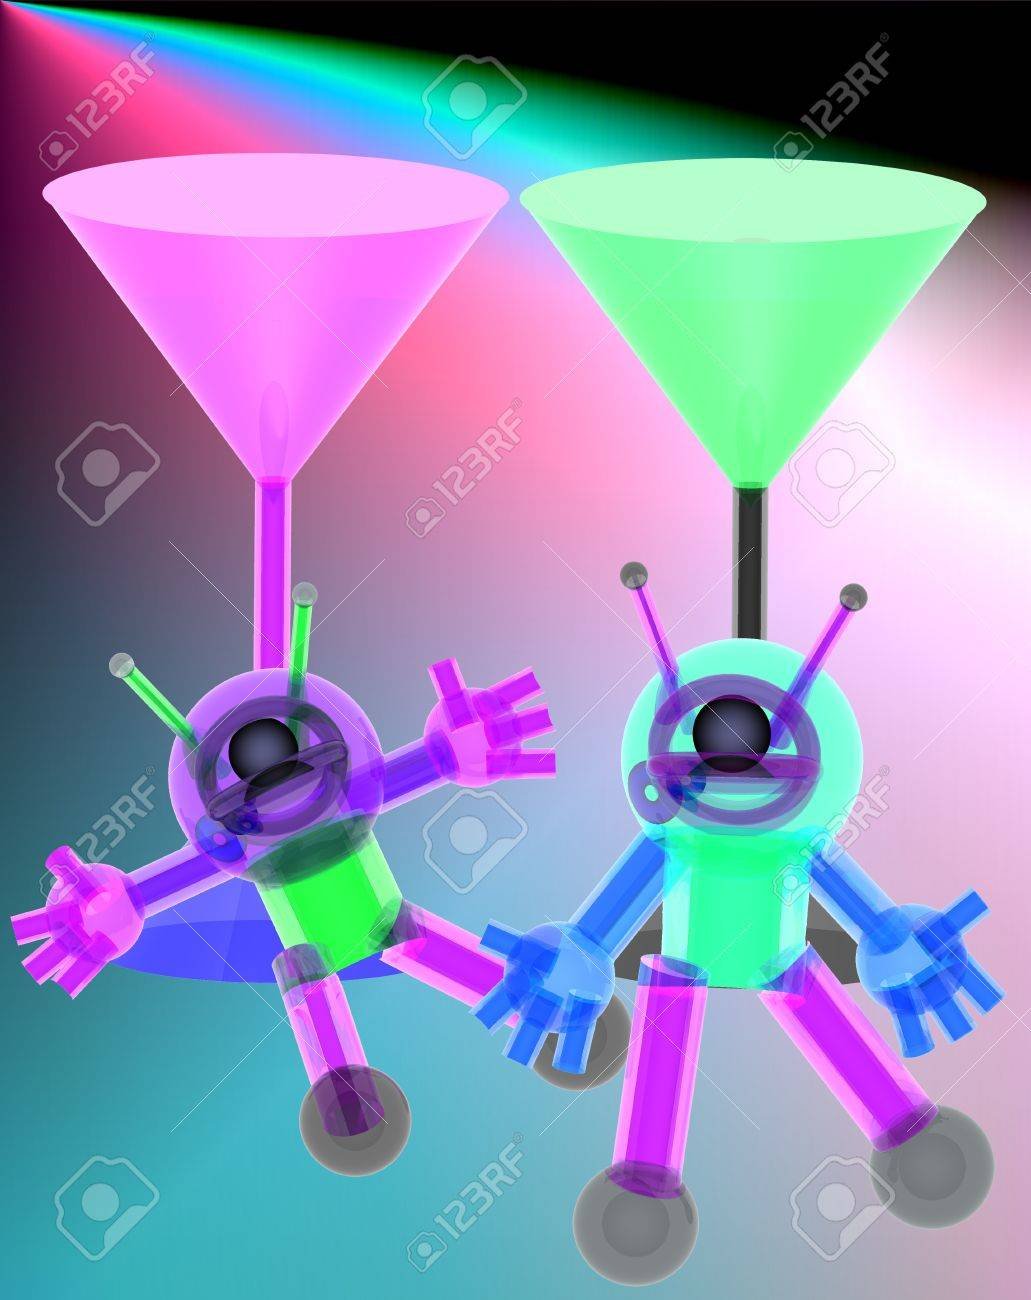 3d Robot and red wine glass on  colorful background. Stock Photo - 9807540